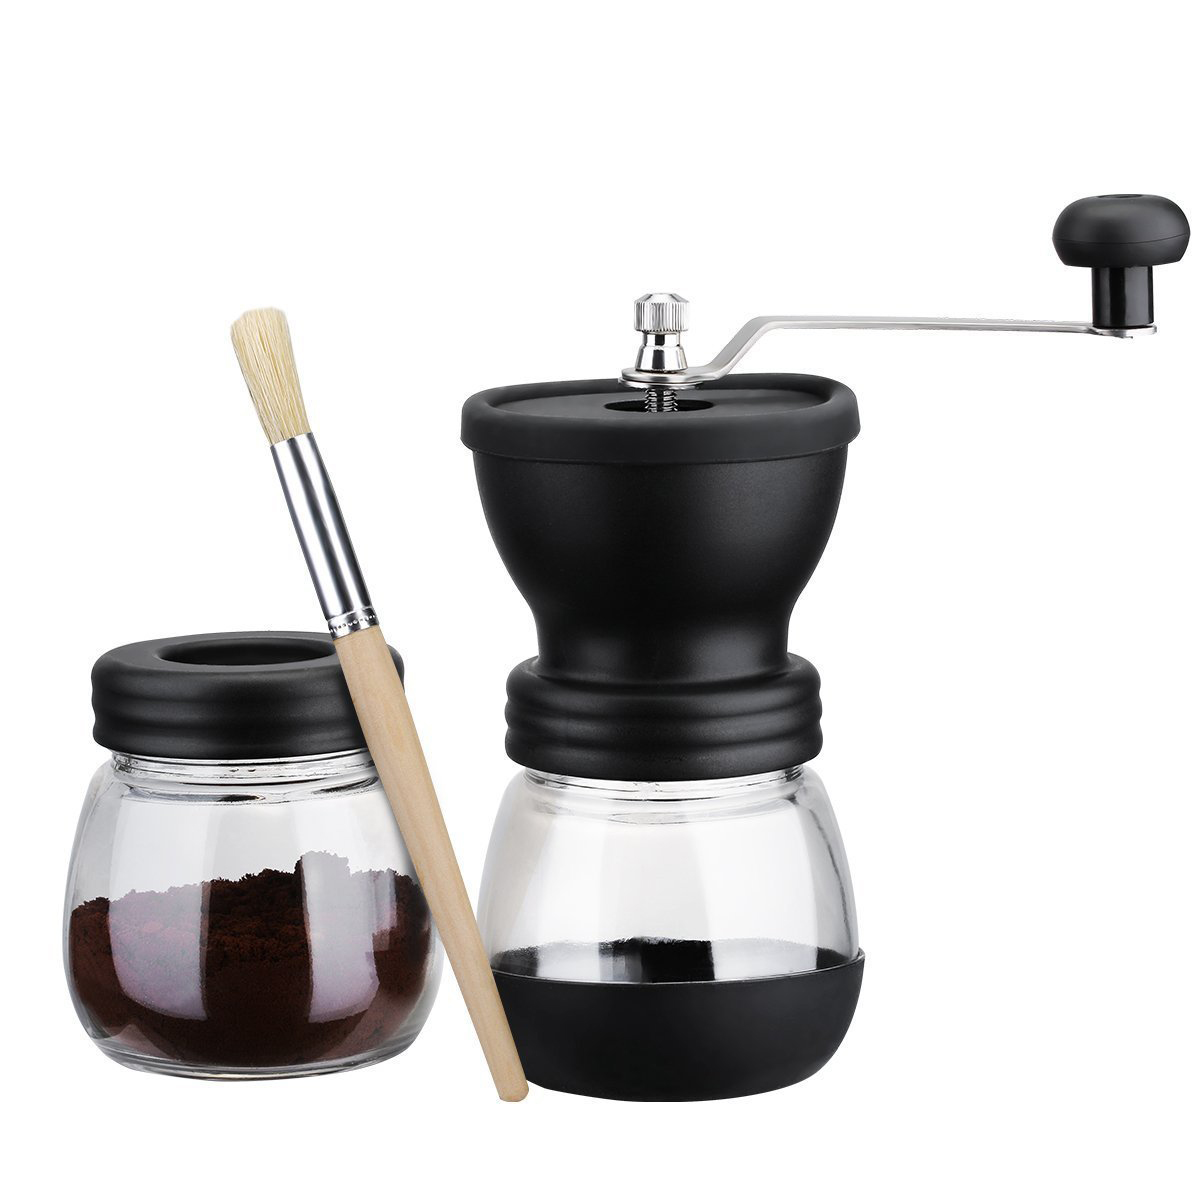 HOT Manual Coffee Grinder with Storage Jar ,Soft brush , Conical Ceramic Burr Quiet and PortableHOT Manual Coffee Grinder with Storage Jar ,Soft brush , Conical Ceramic Burr Quiet and Portable